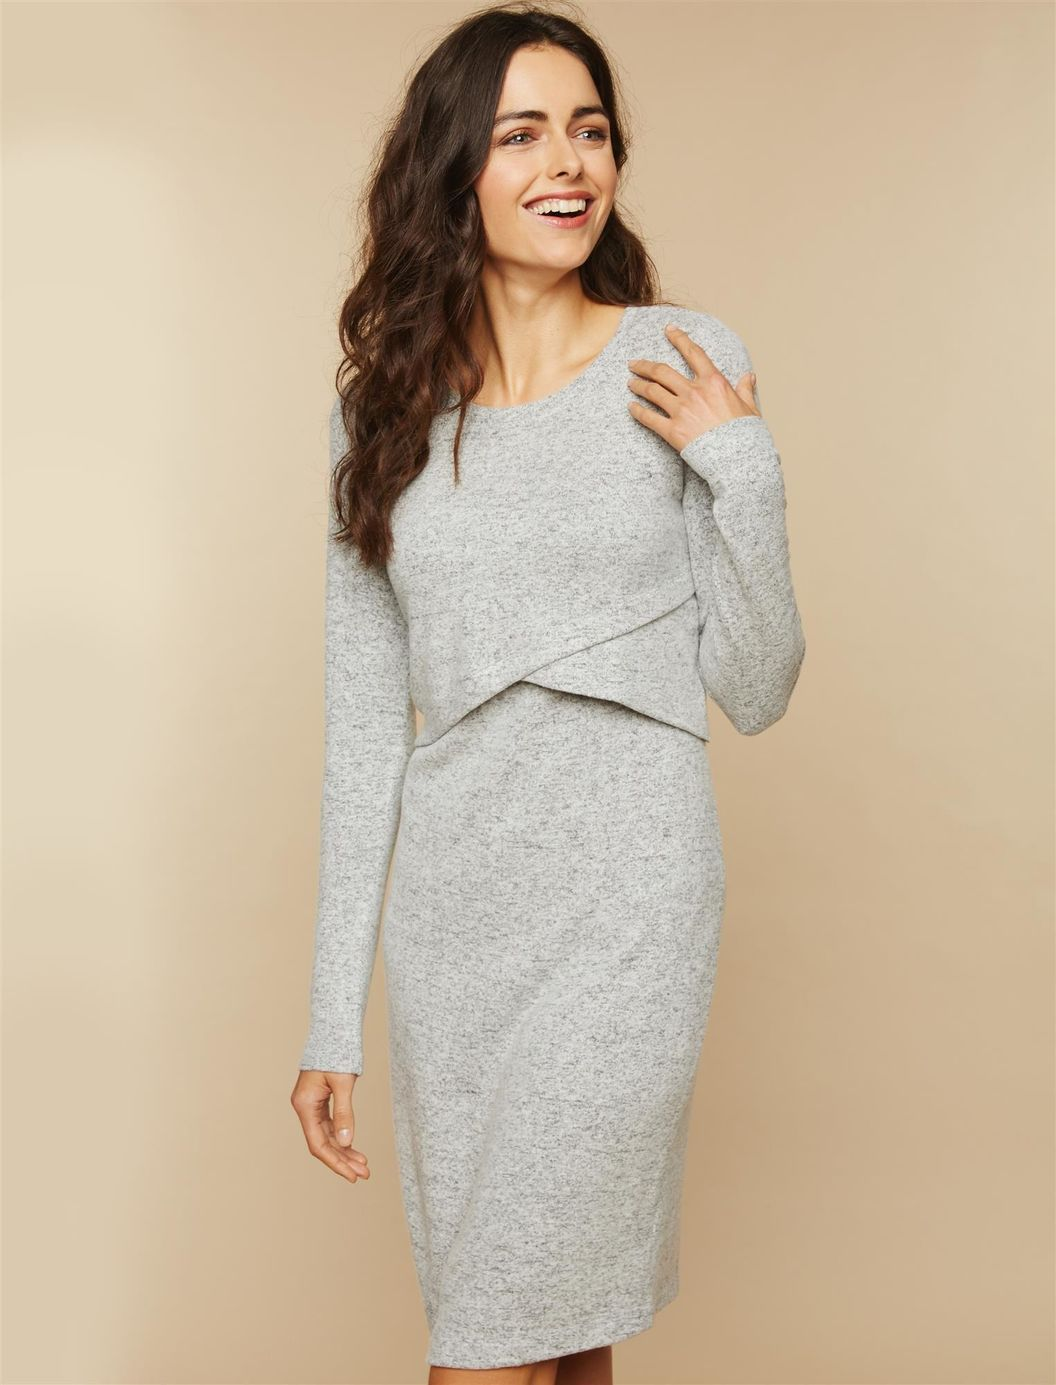 8273f8b26ce Heathered Nursing Sweater Dress